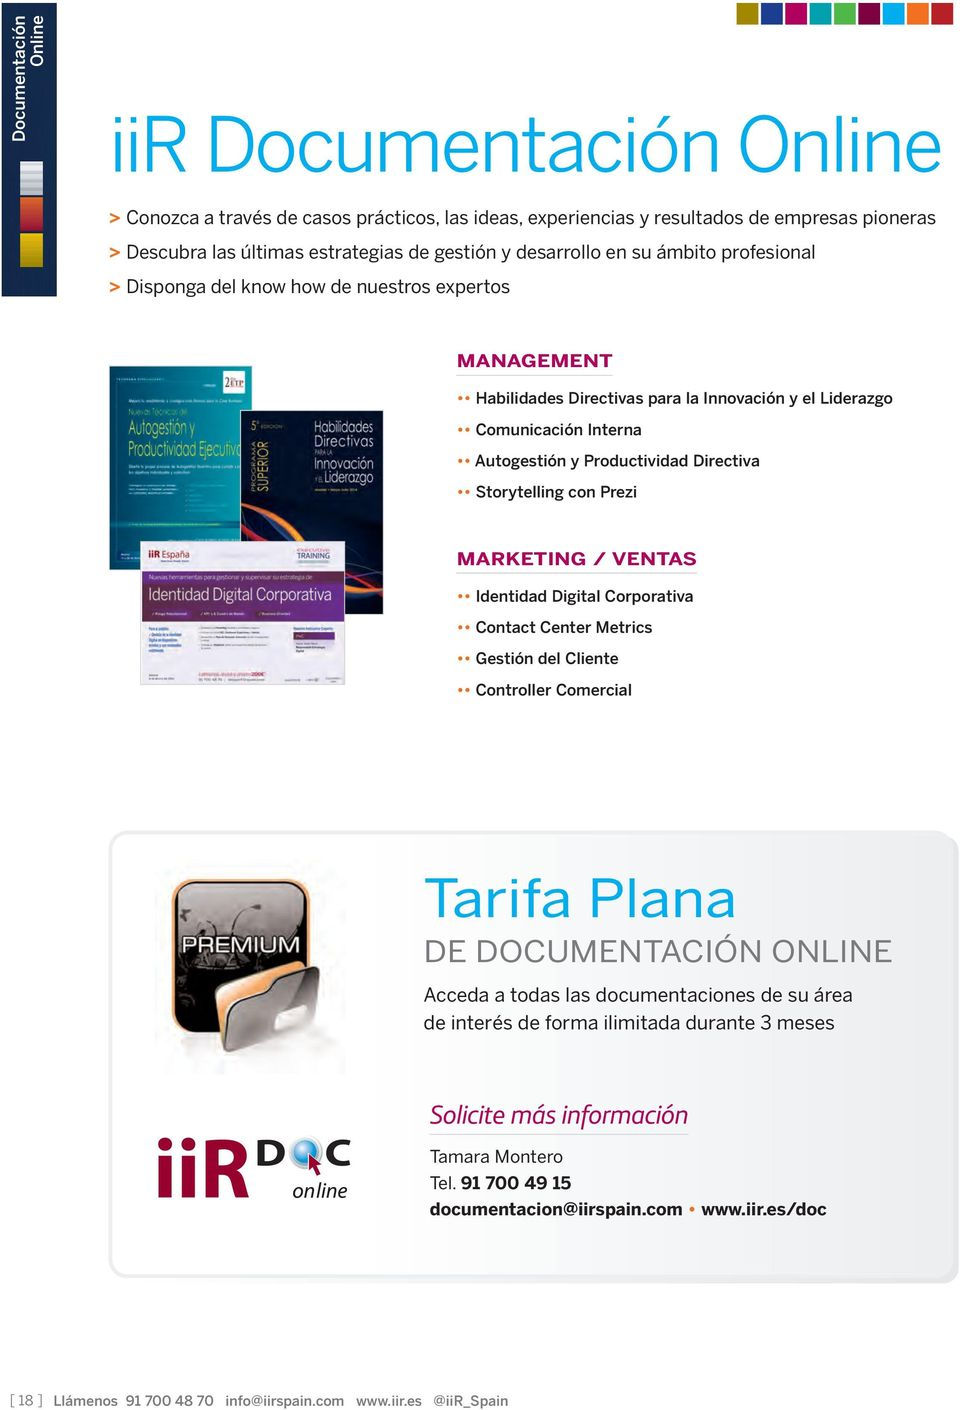 Directiva Storytelling con Prezi MARKETING / VENTAS Identidad Digital Corporativa Contact Center Metrics Gestión del Cliente Controller Comercial Tarifa Plana DE DOCUMENTACIÓN ONLINE Acceda a todas